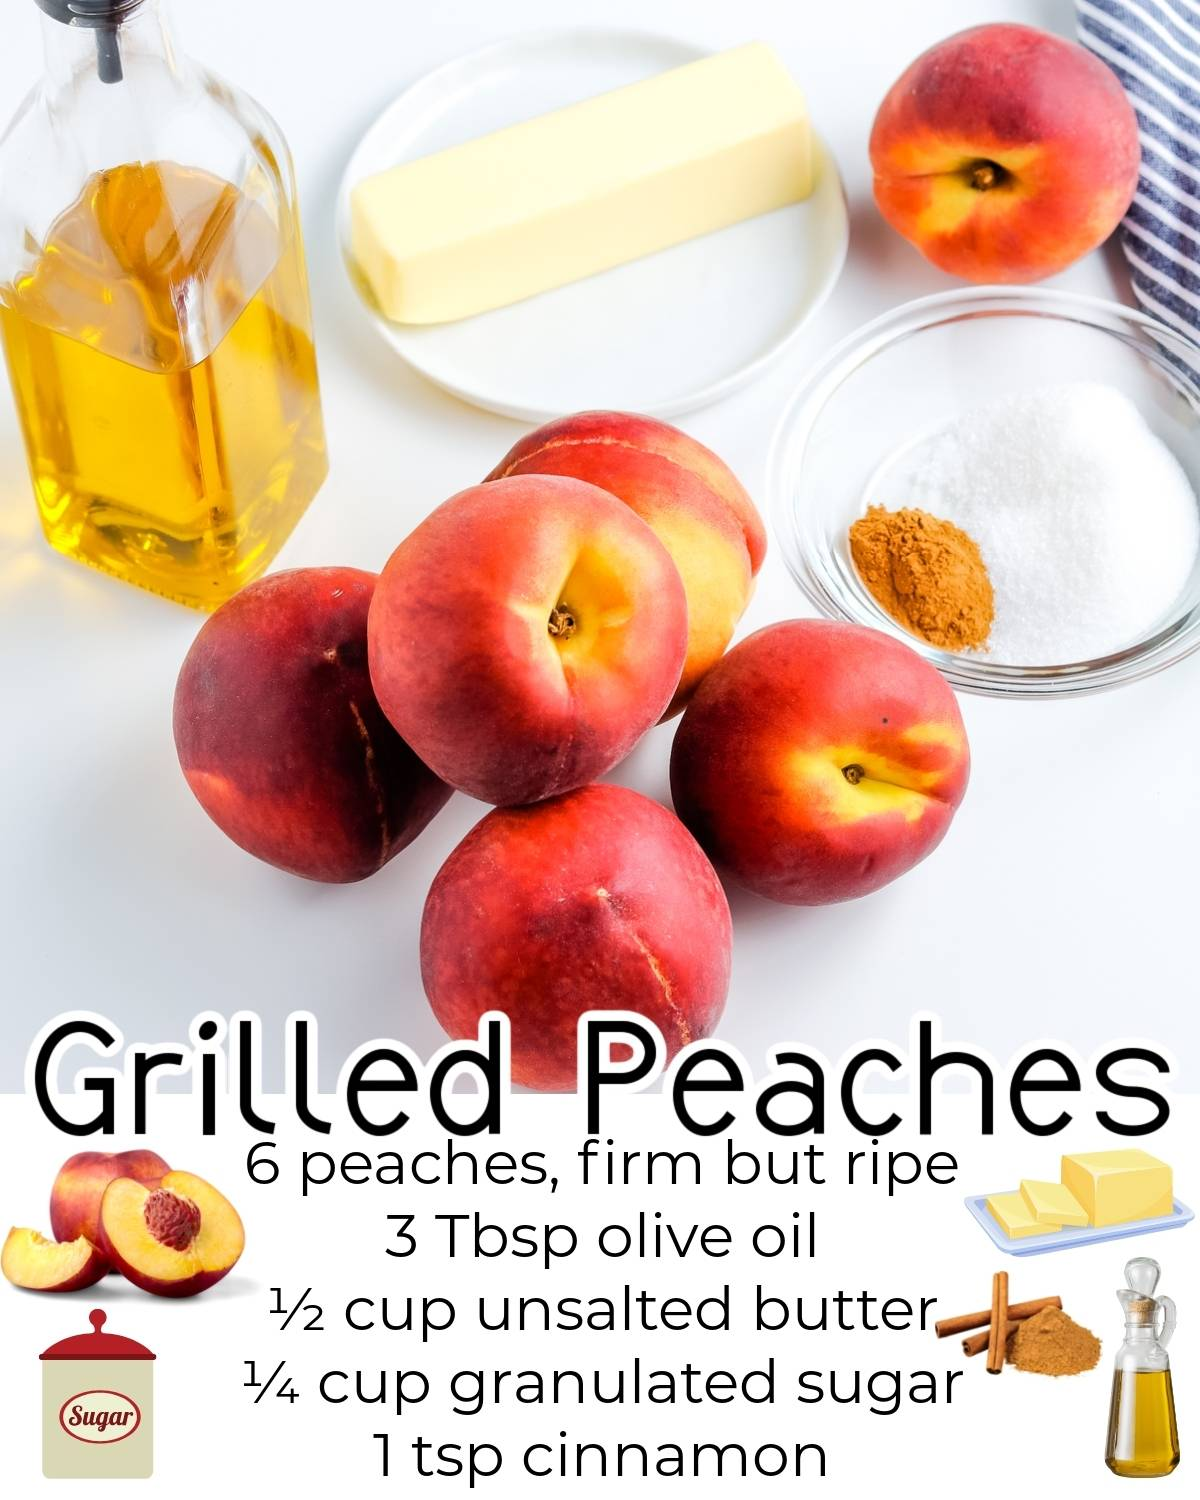 All of the ingredients needed to make this Grilled Peaches recipe.